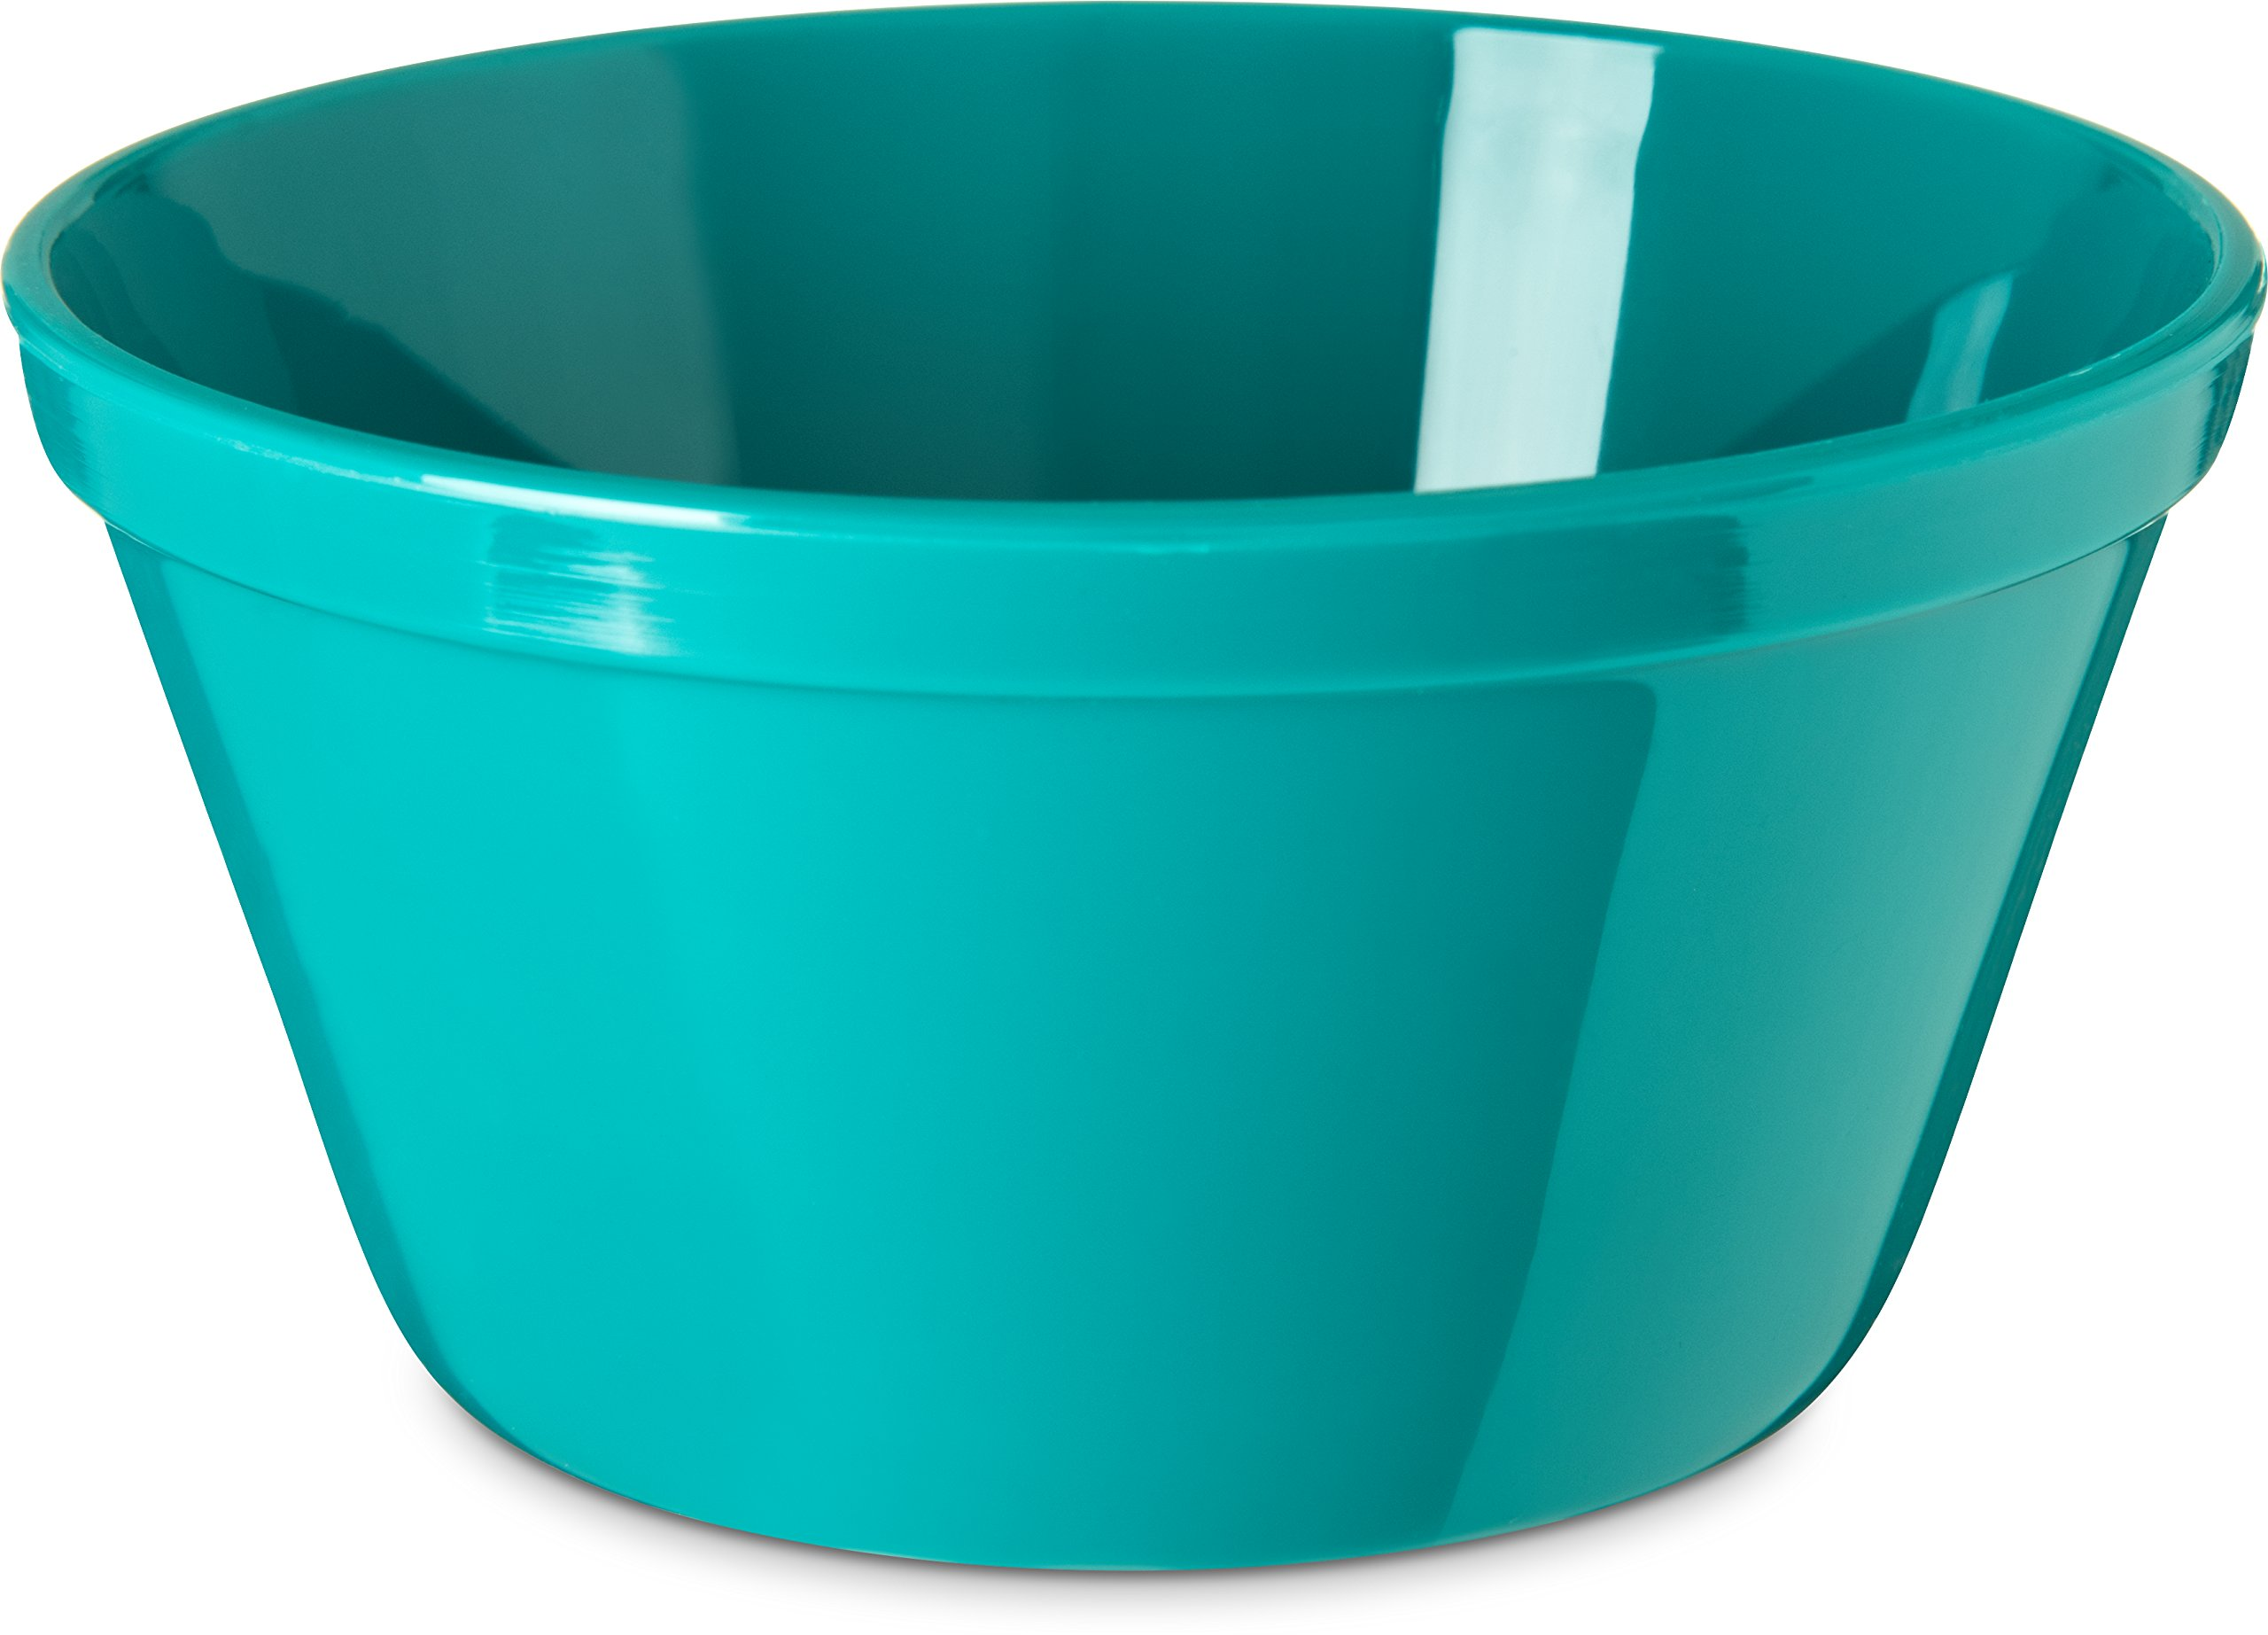 Carlisle PCD30815 Long-Life Polycarbonate Rimmed Bouillon Cups, 8 Oz., Teal (Pack of 48)